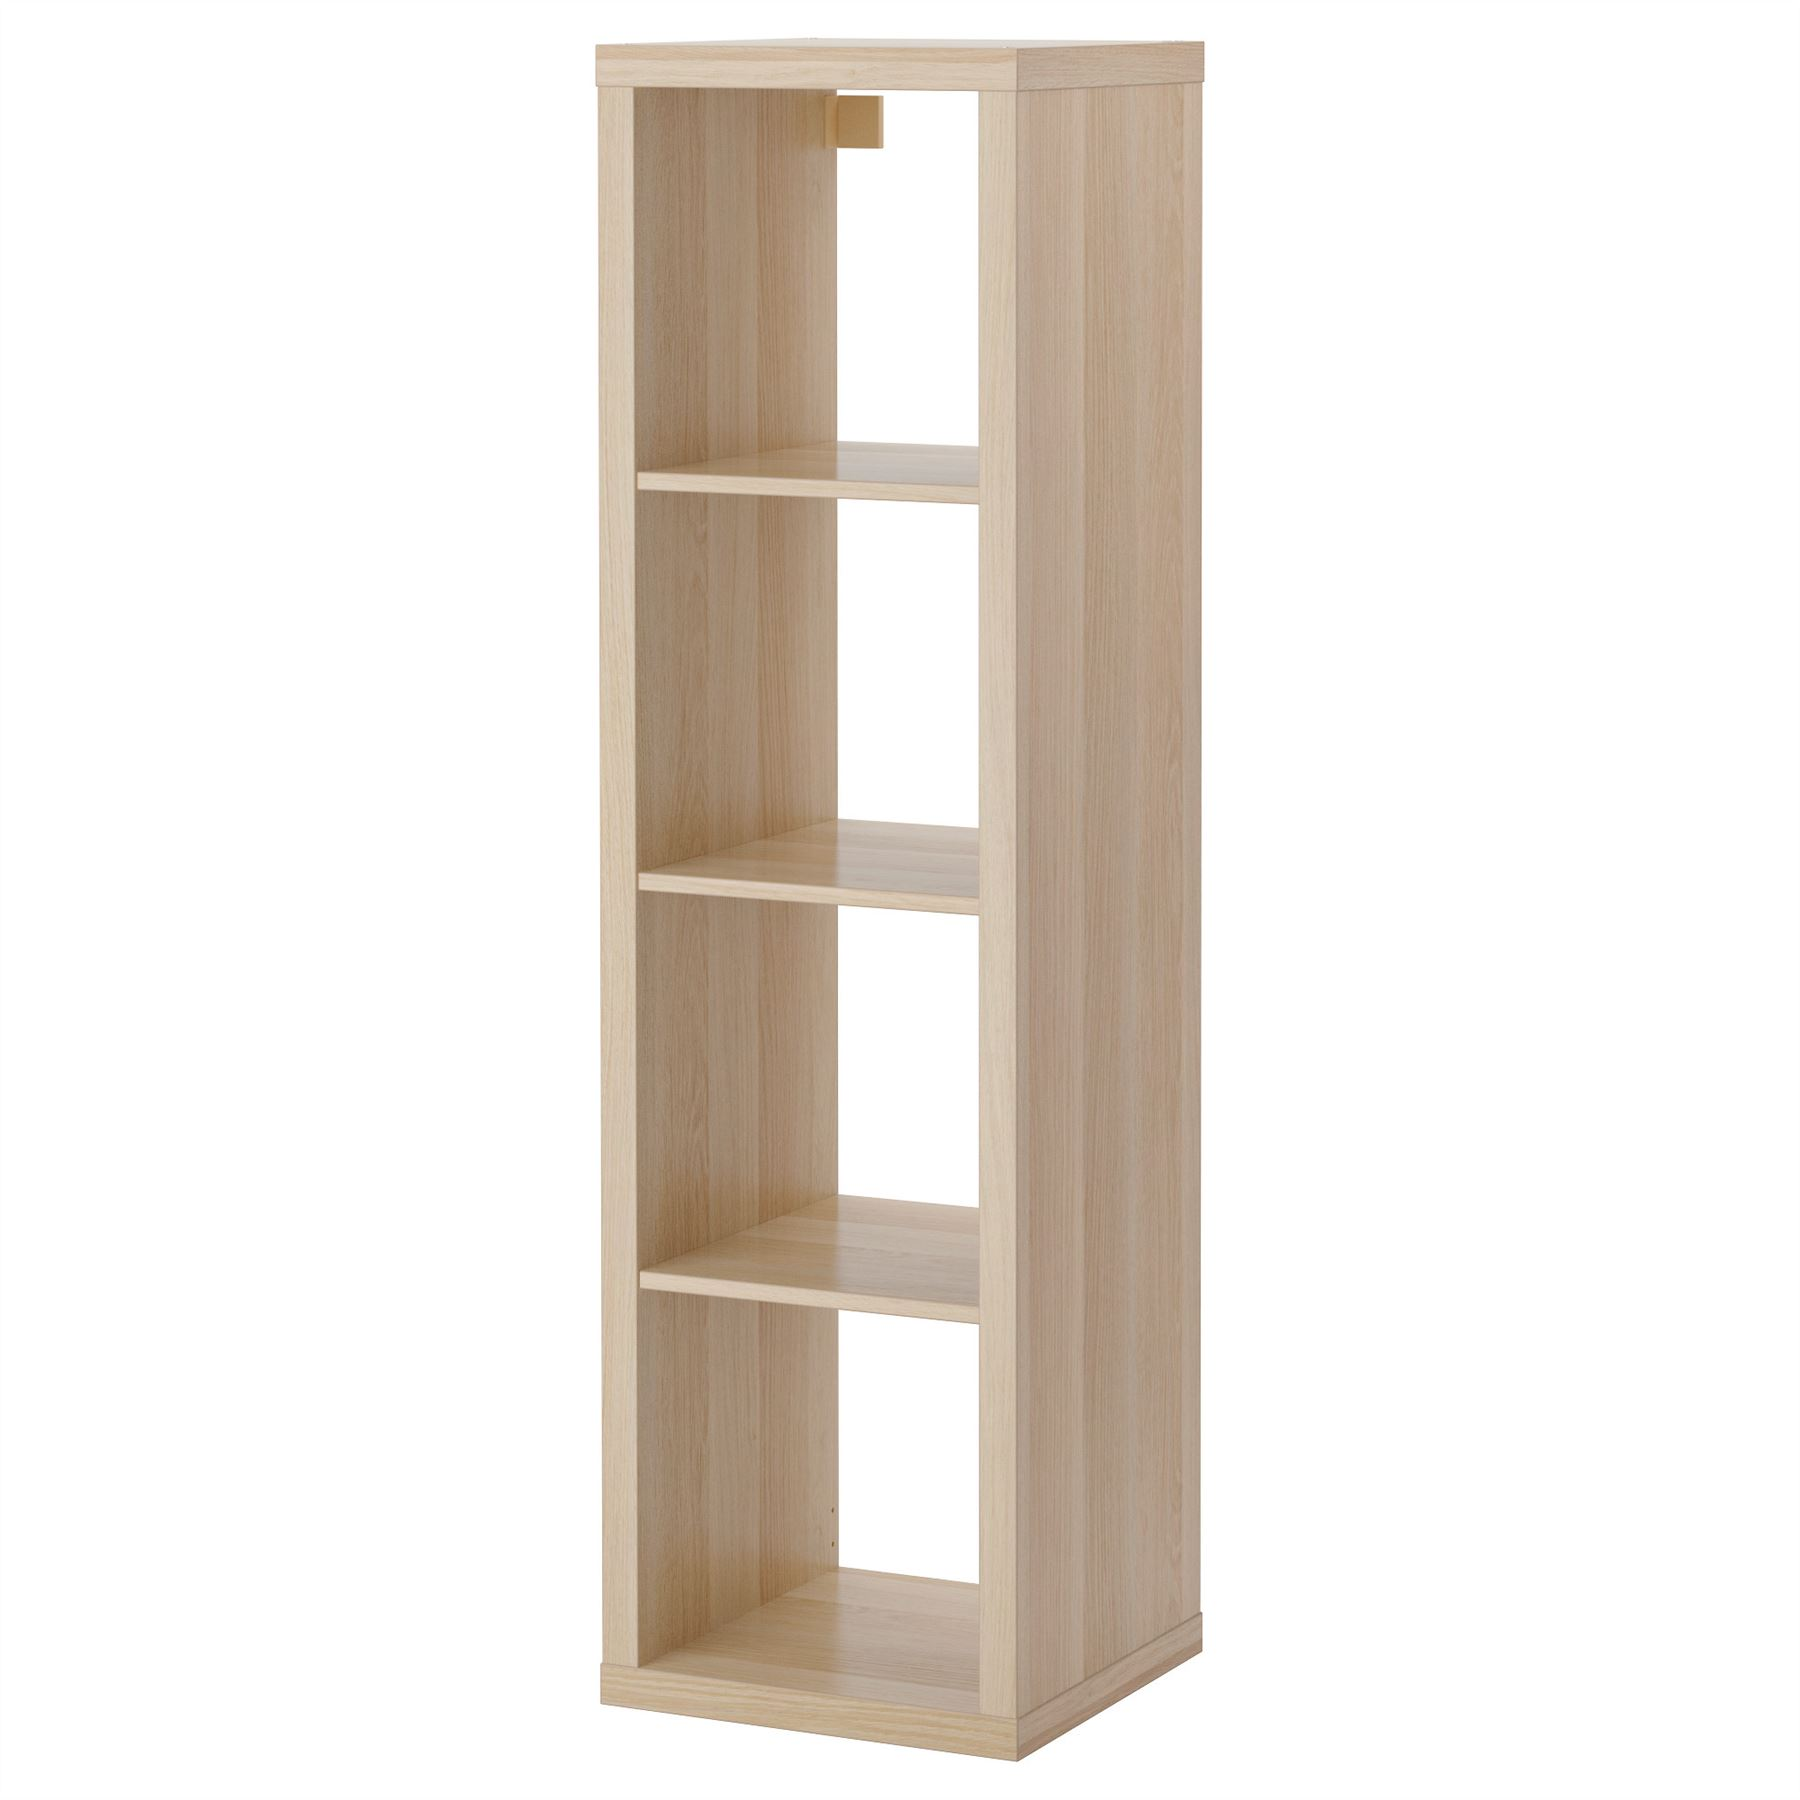 Regal ikea kallax  Ikea Kallax 4 Cube Storage Bookcase Rectangle Shelving Unit White ...